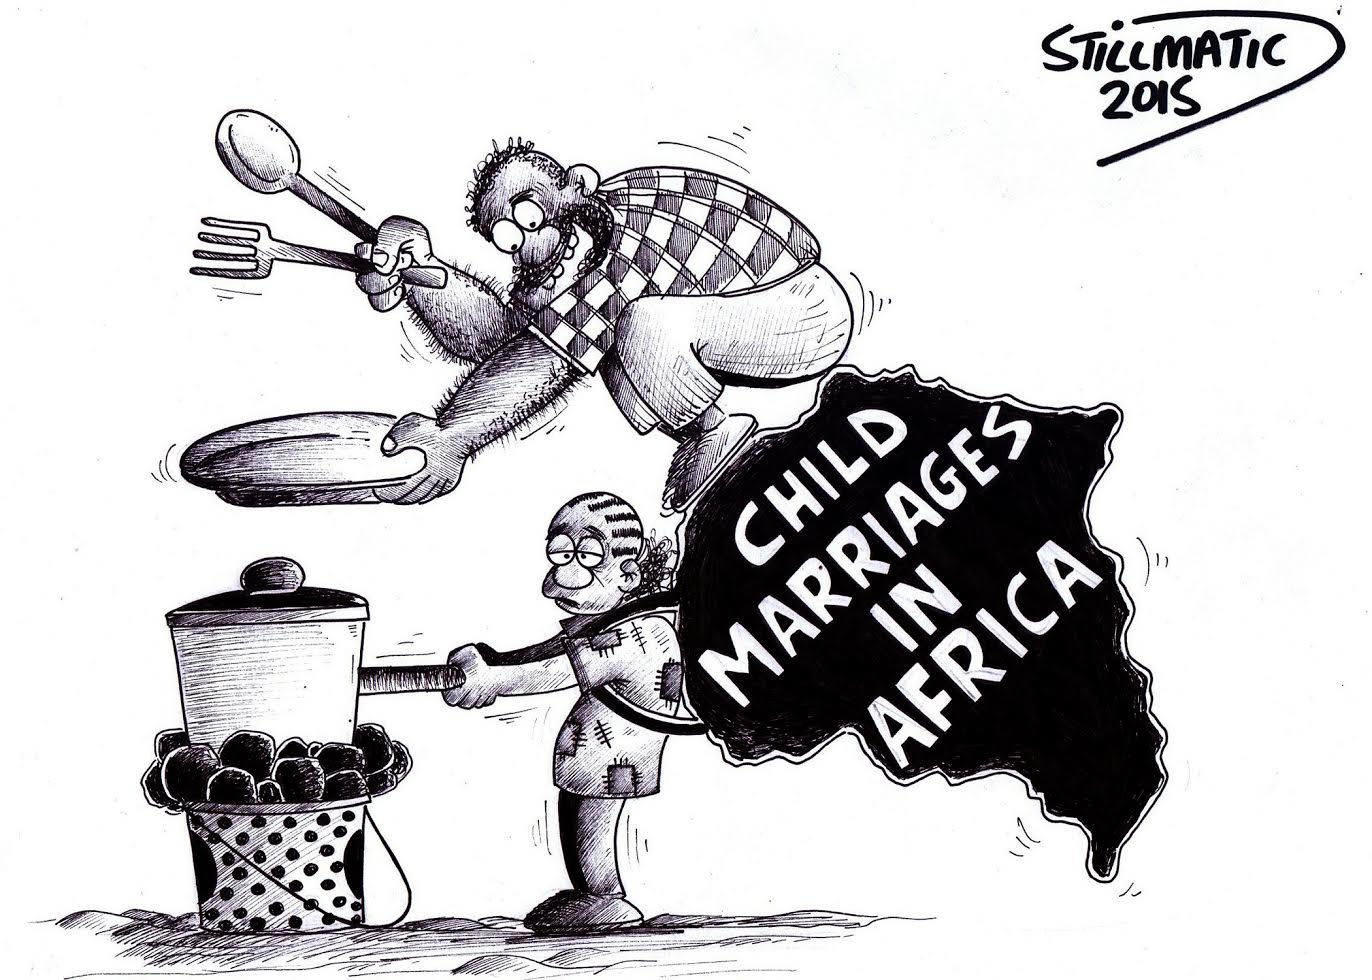 Nsaka_2015_Child marriage